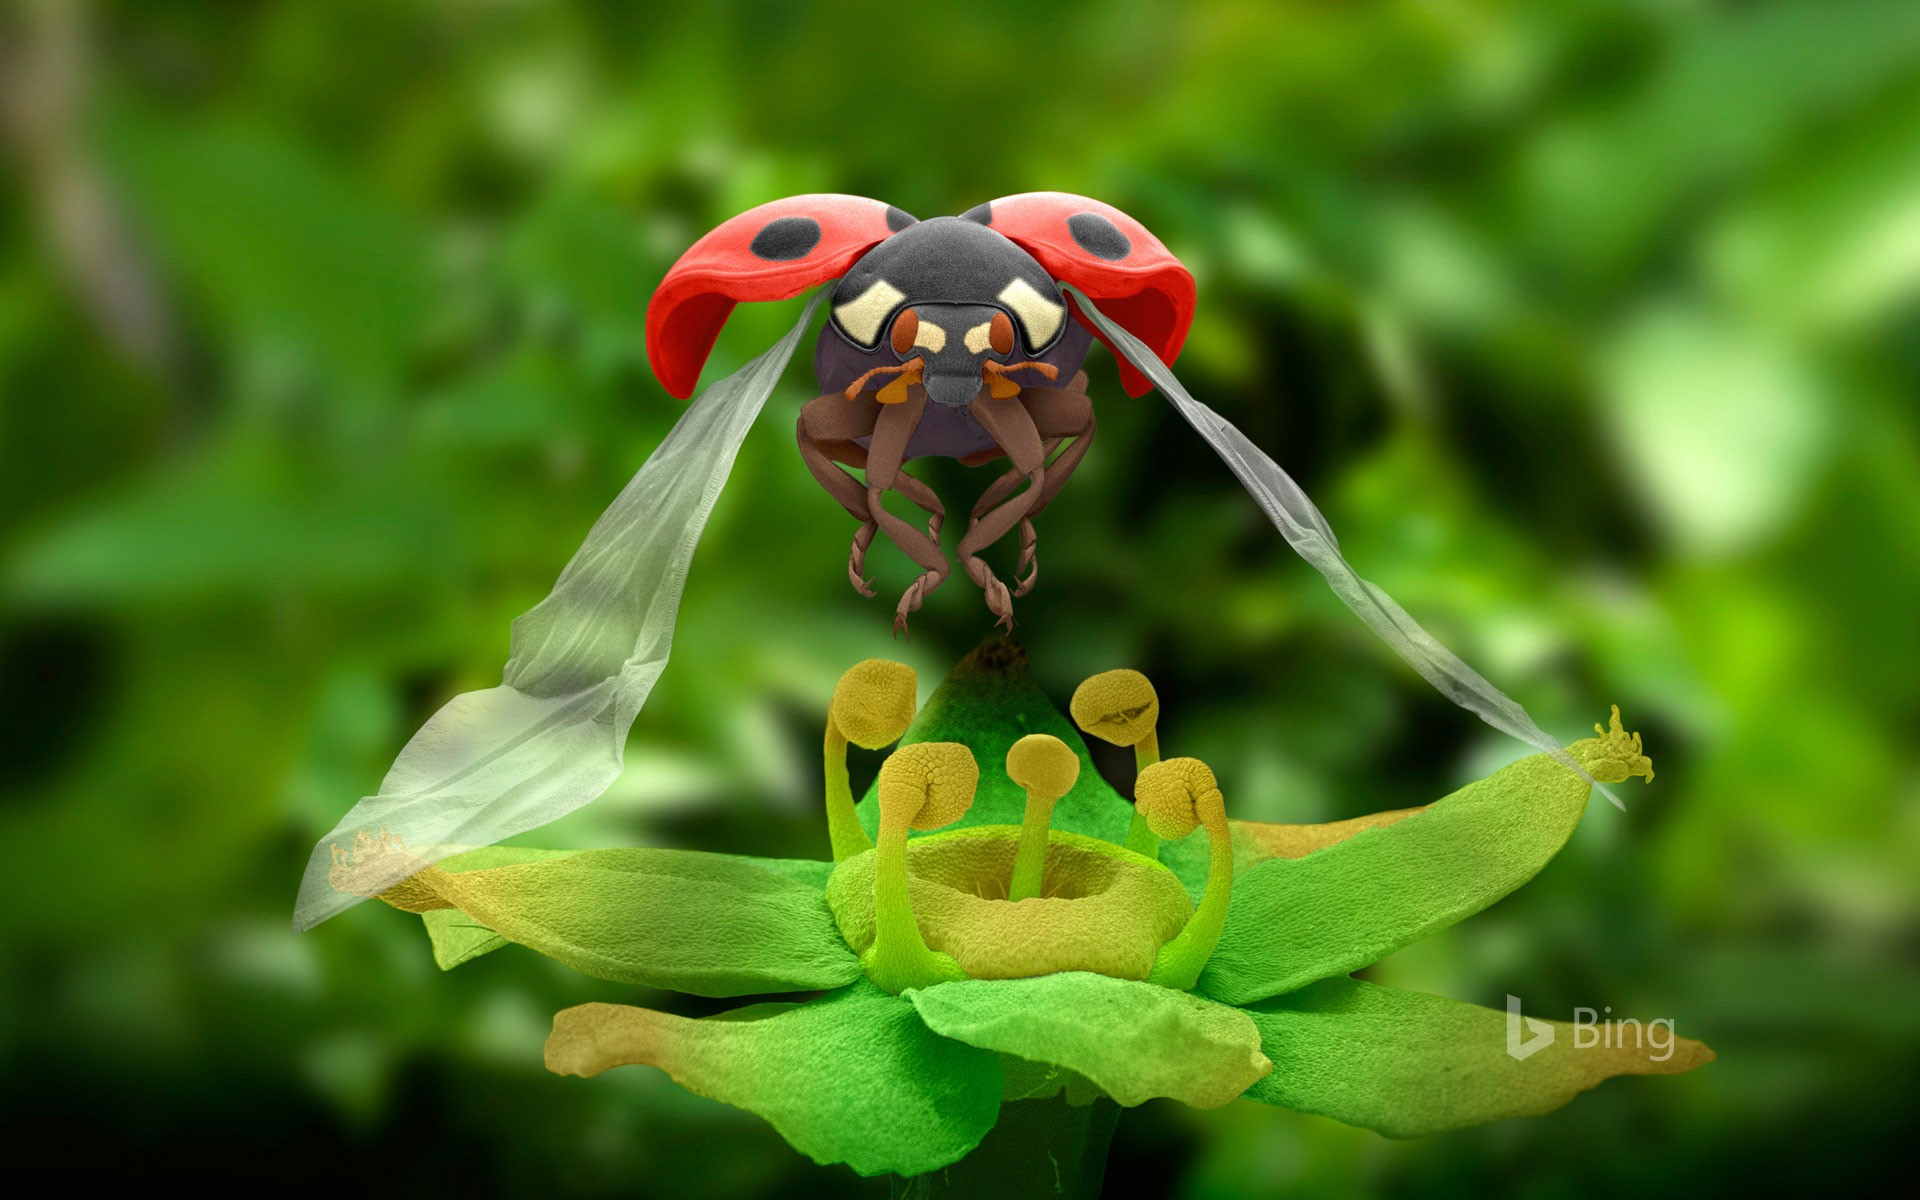 Coloured scanning electron micrograph of a seven-spot ladybird in flight